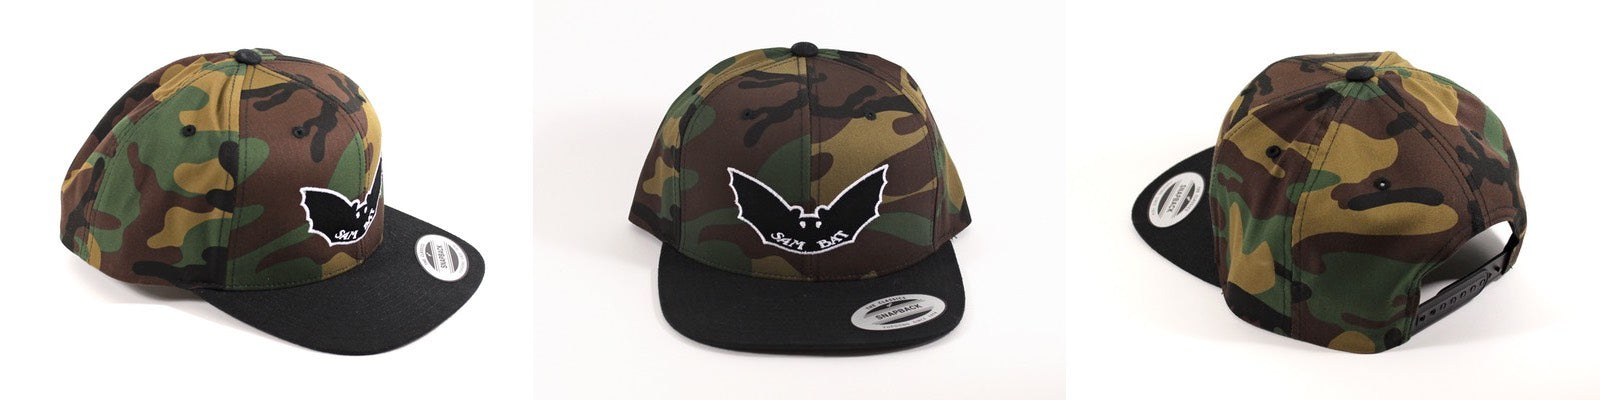 Sam Bat Retro Trucker - Camo